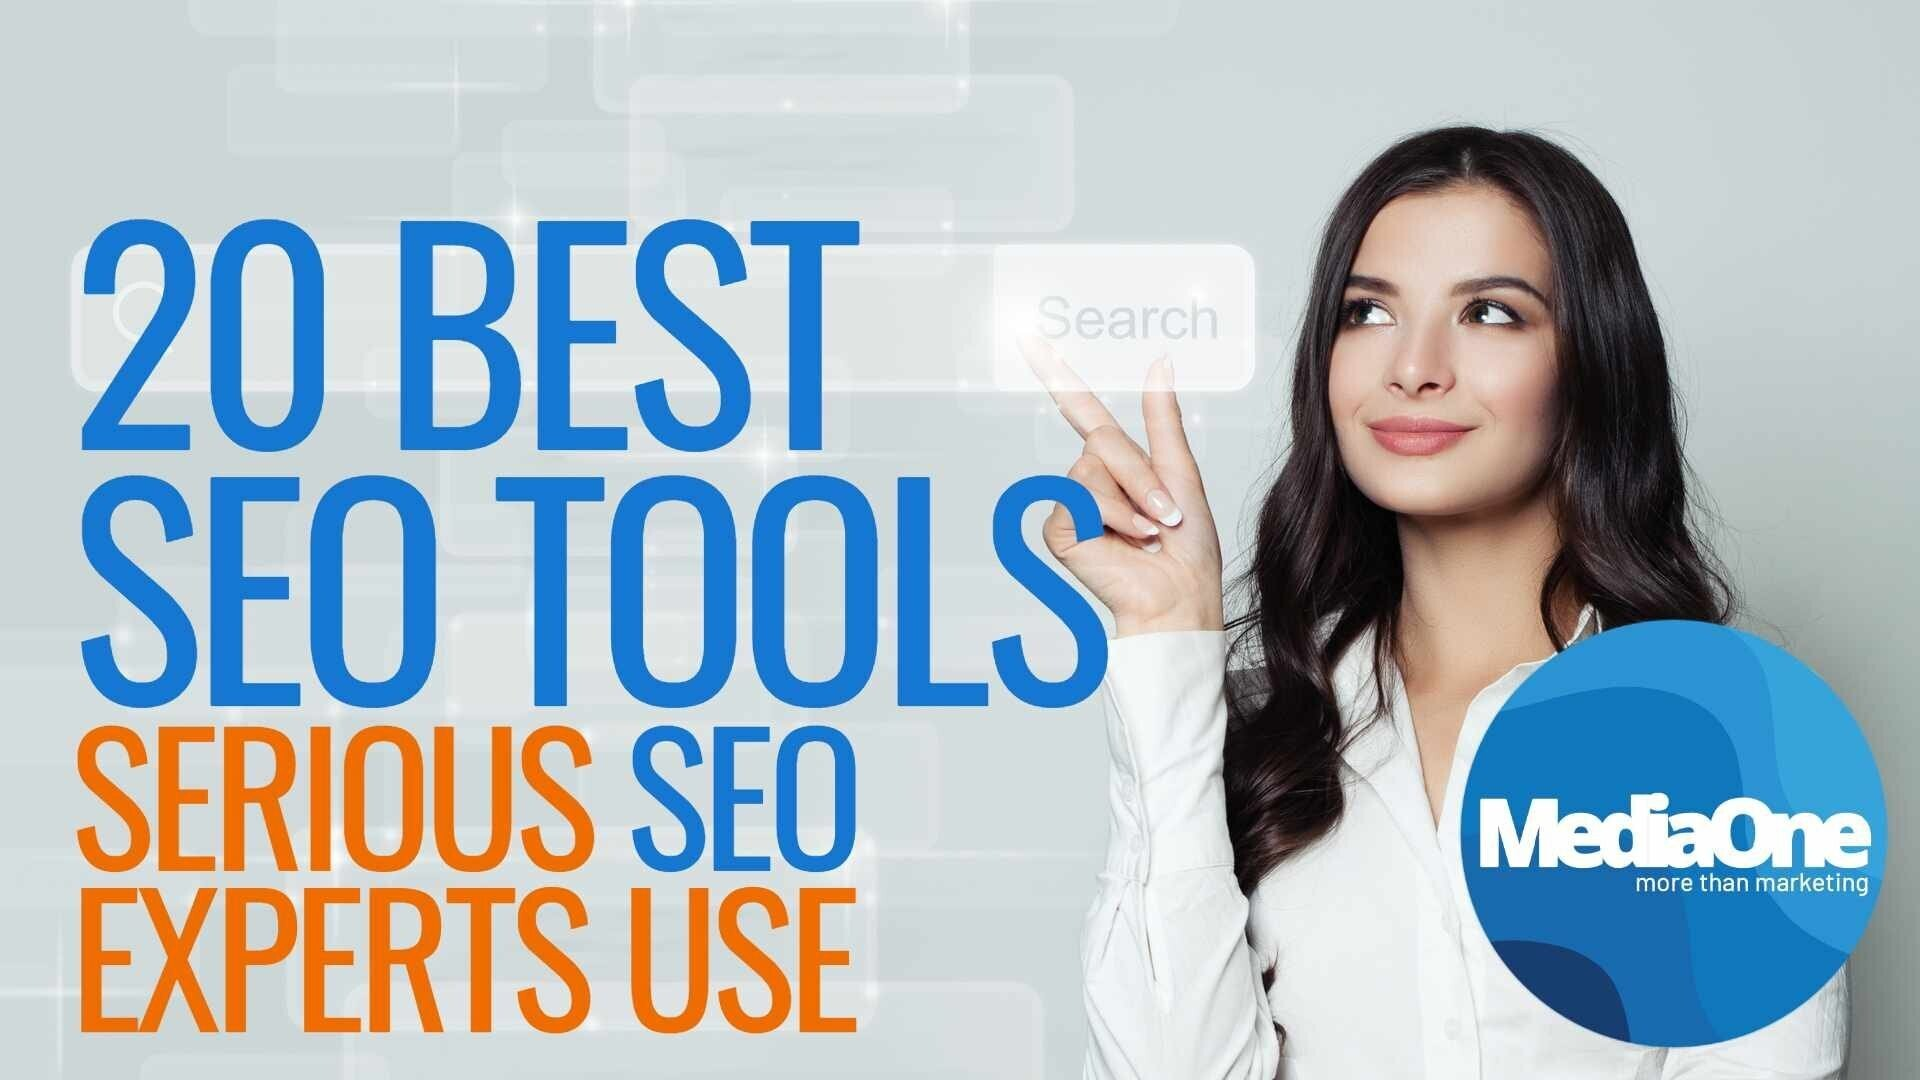 Ways to Get the Most from an SEO Tool